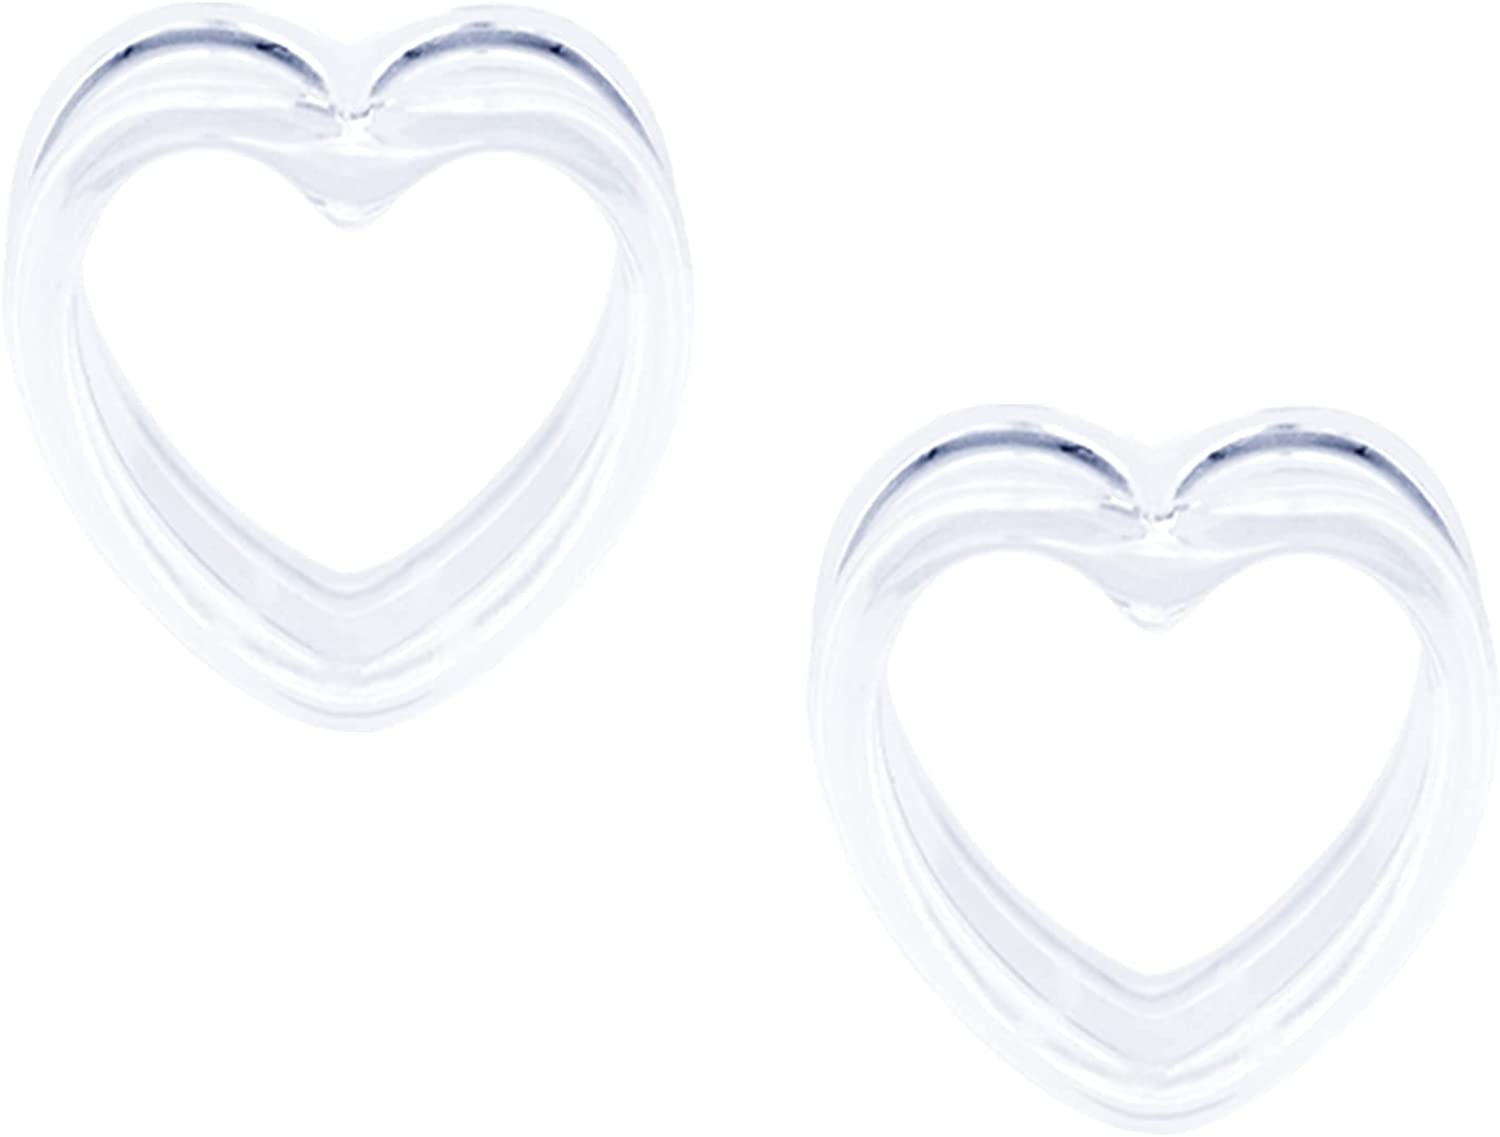 AceFun 1 Pair Ear Tunnels Ear Plugs Tunnels Silicone Double Flared Solid & Hollow Heart 6-25mm Ear Gauge Ear Stretchers Expander Clear White Black Body Piercing Jewelry